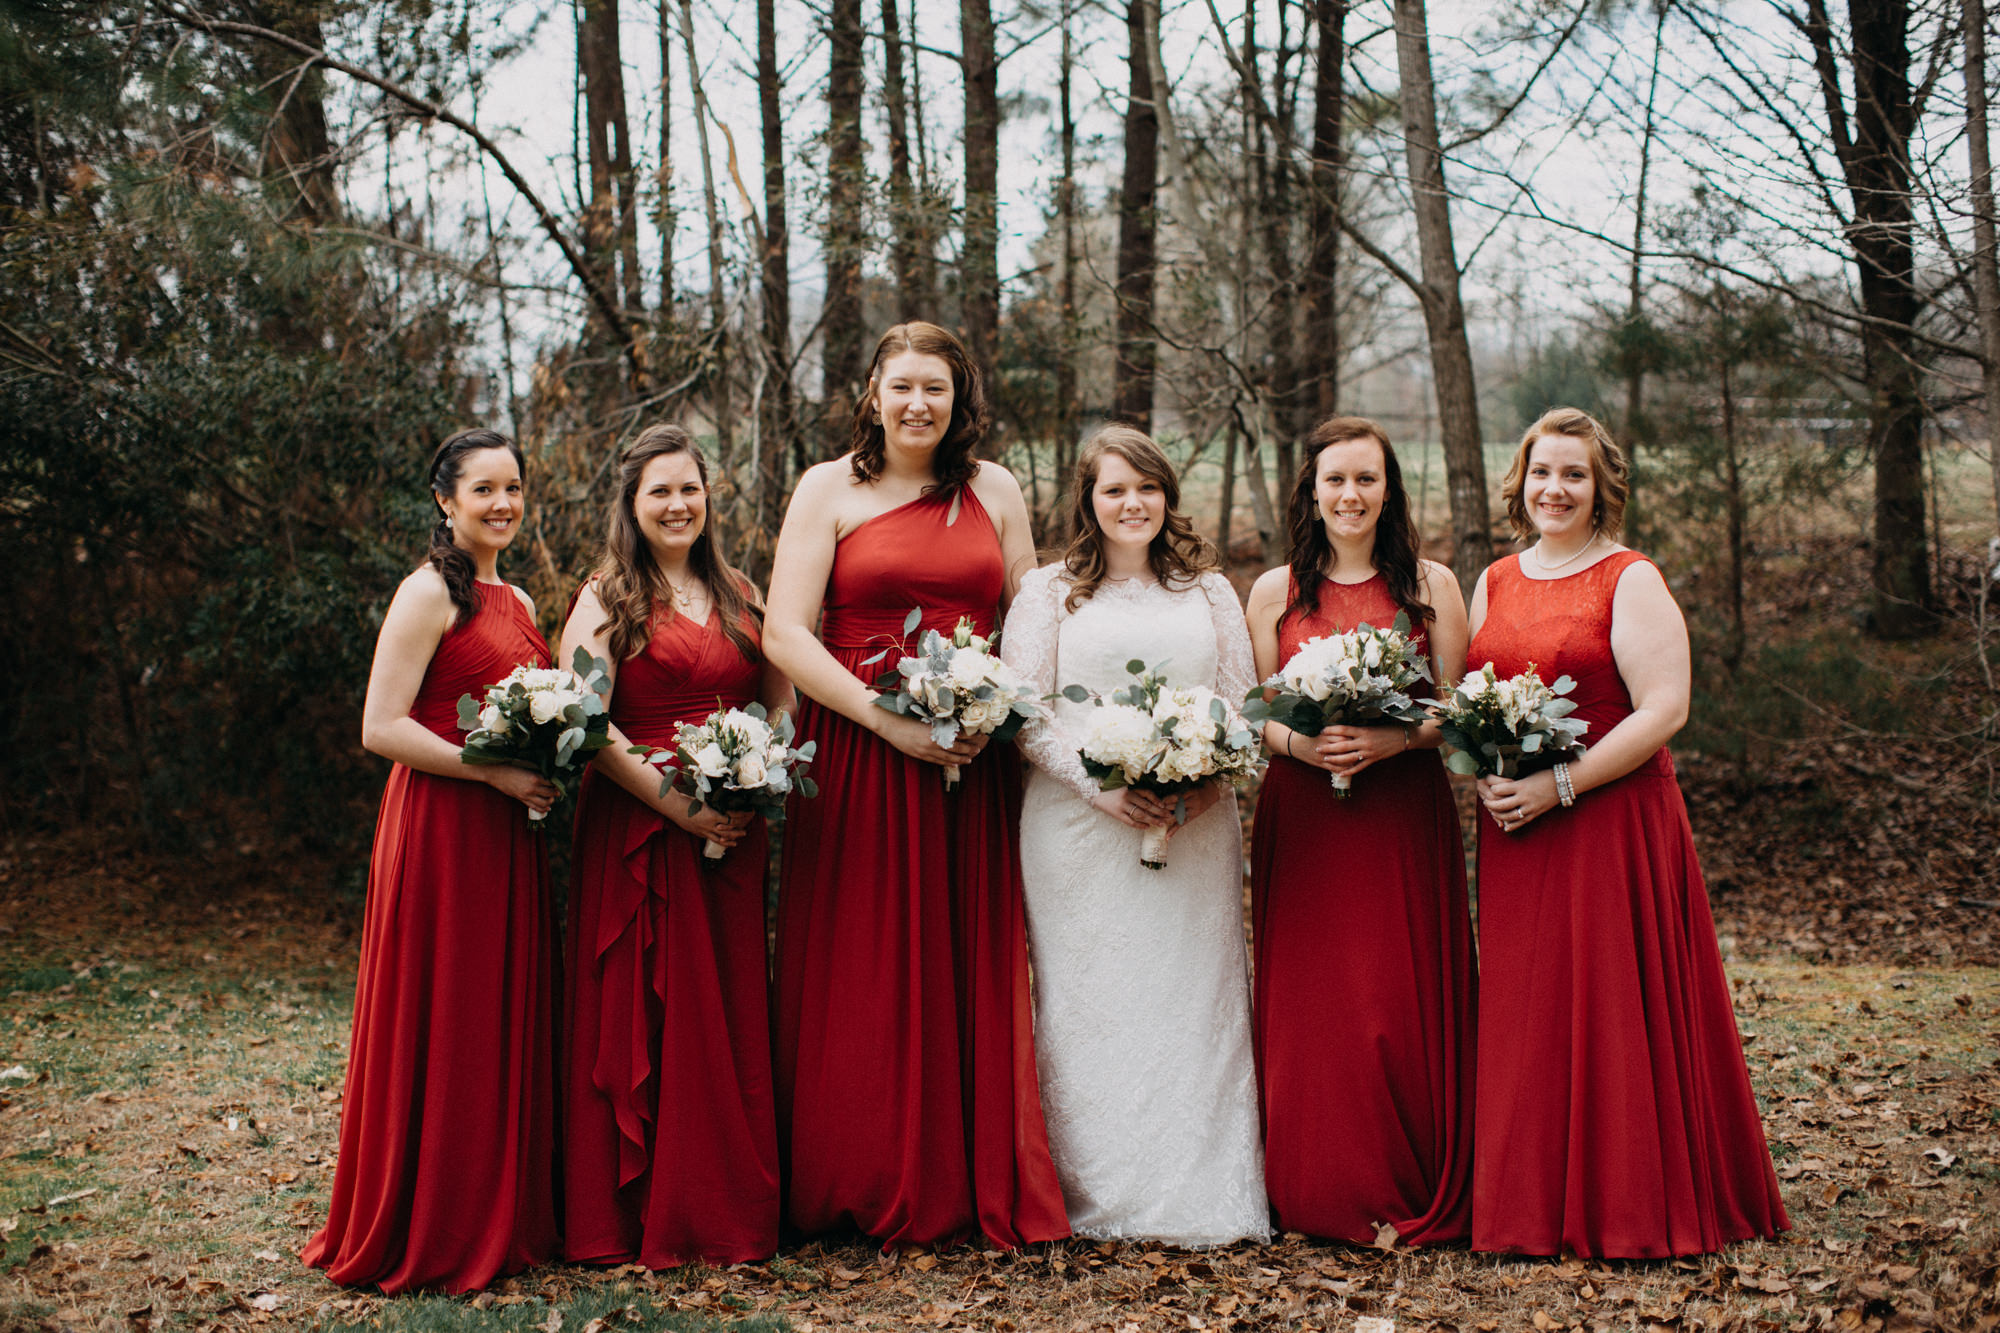 bridal party standing together